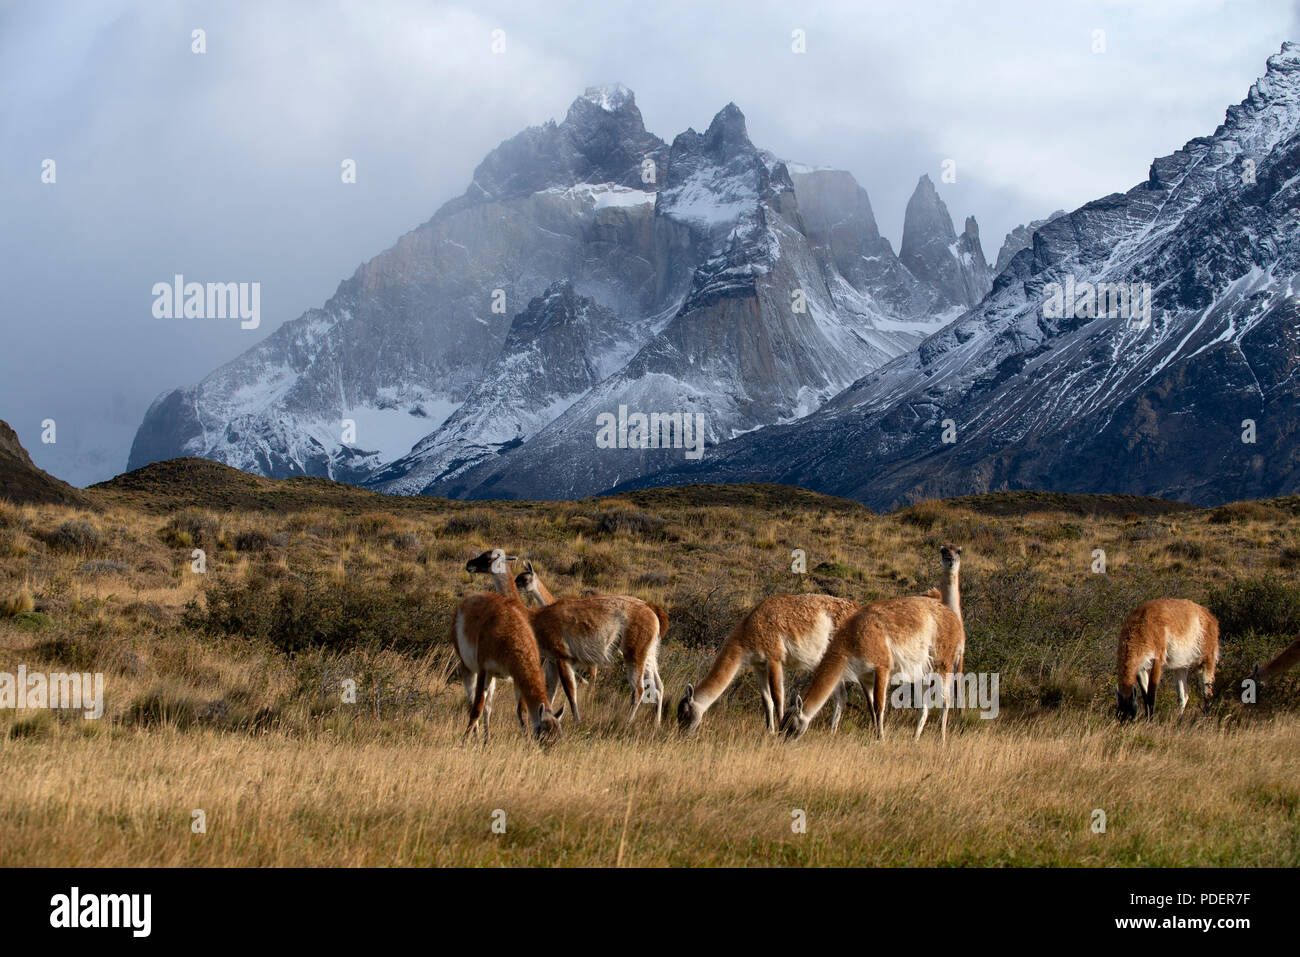 Small herd of Guanaco grazing on dry grass with some of the snow dusted peaks of the Torres del Paine range behind - Stock Image